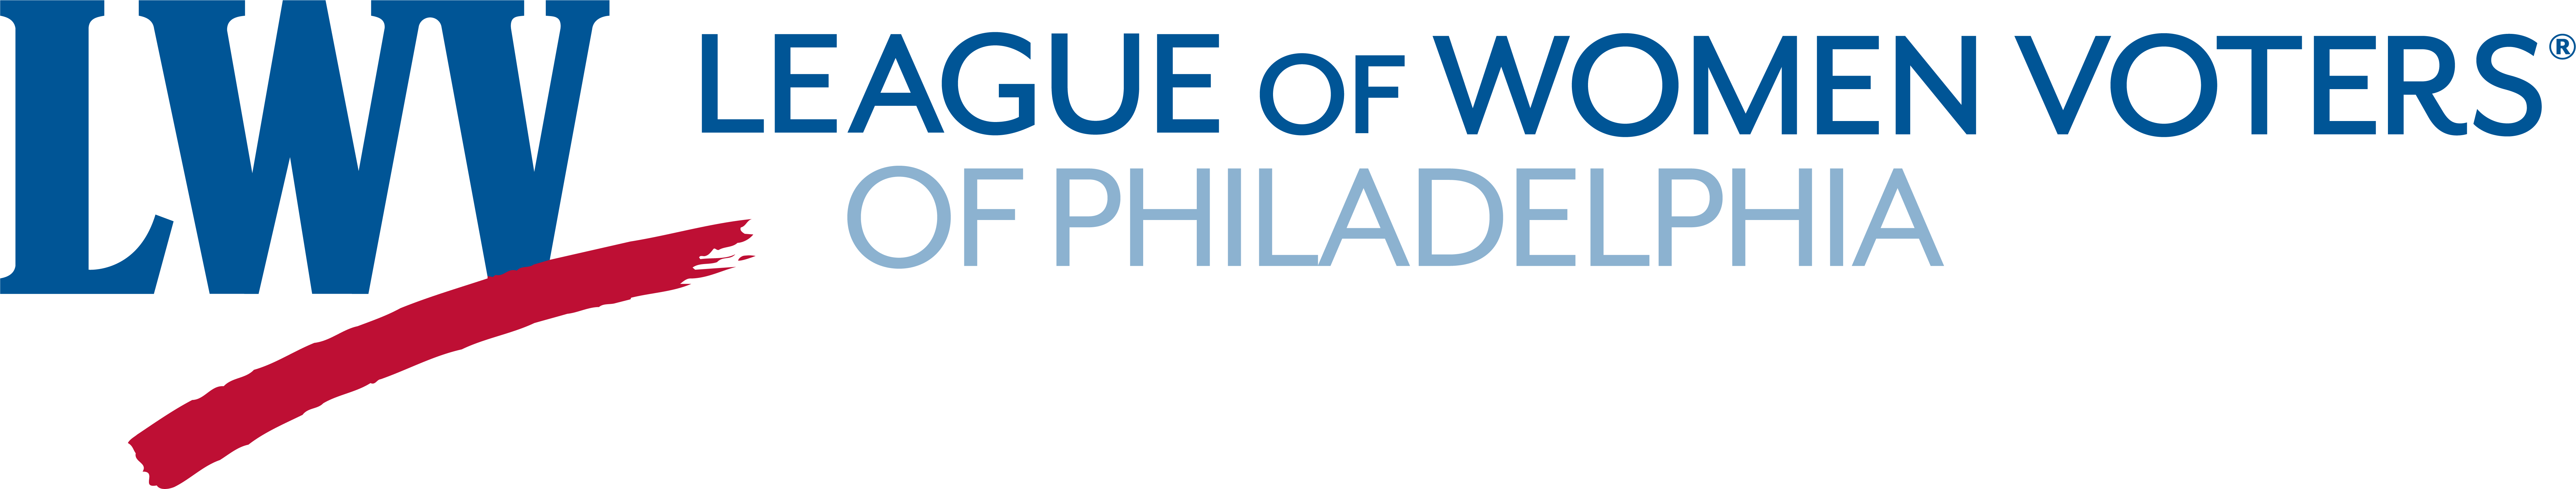 League of Woman Voters Philadelphia